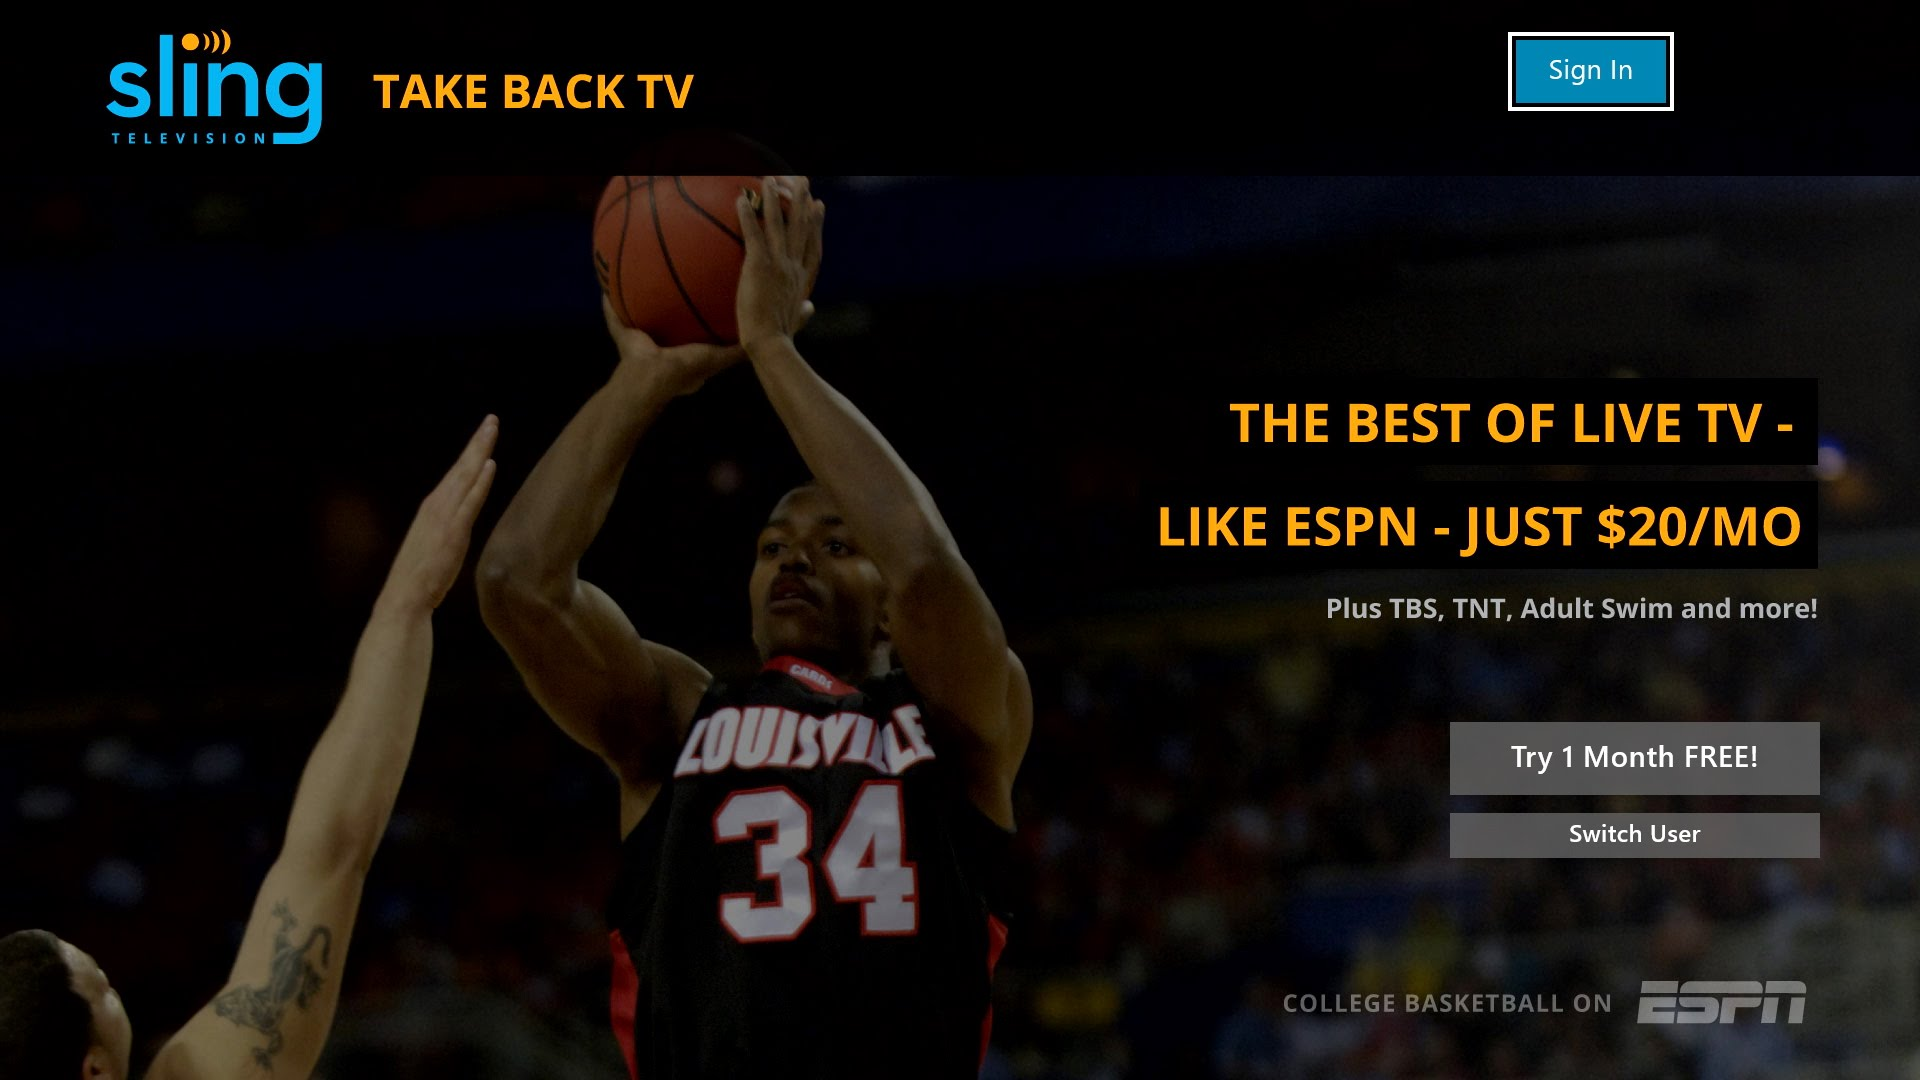 Video For Sling TV Launches Today Exclusively on Xbox One; Xbox Members Get Exclusive One Month Free Trial